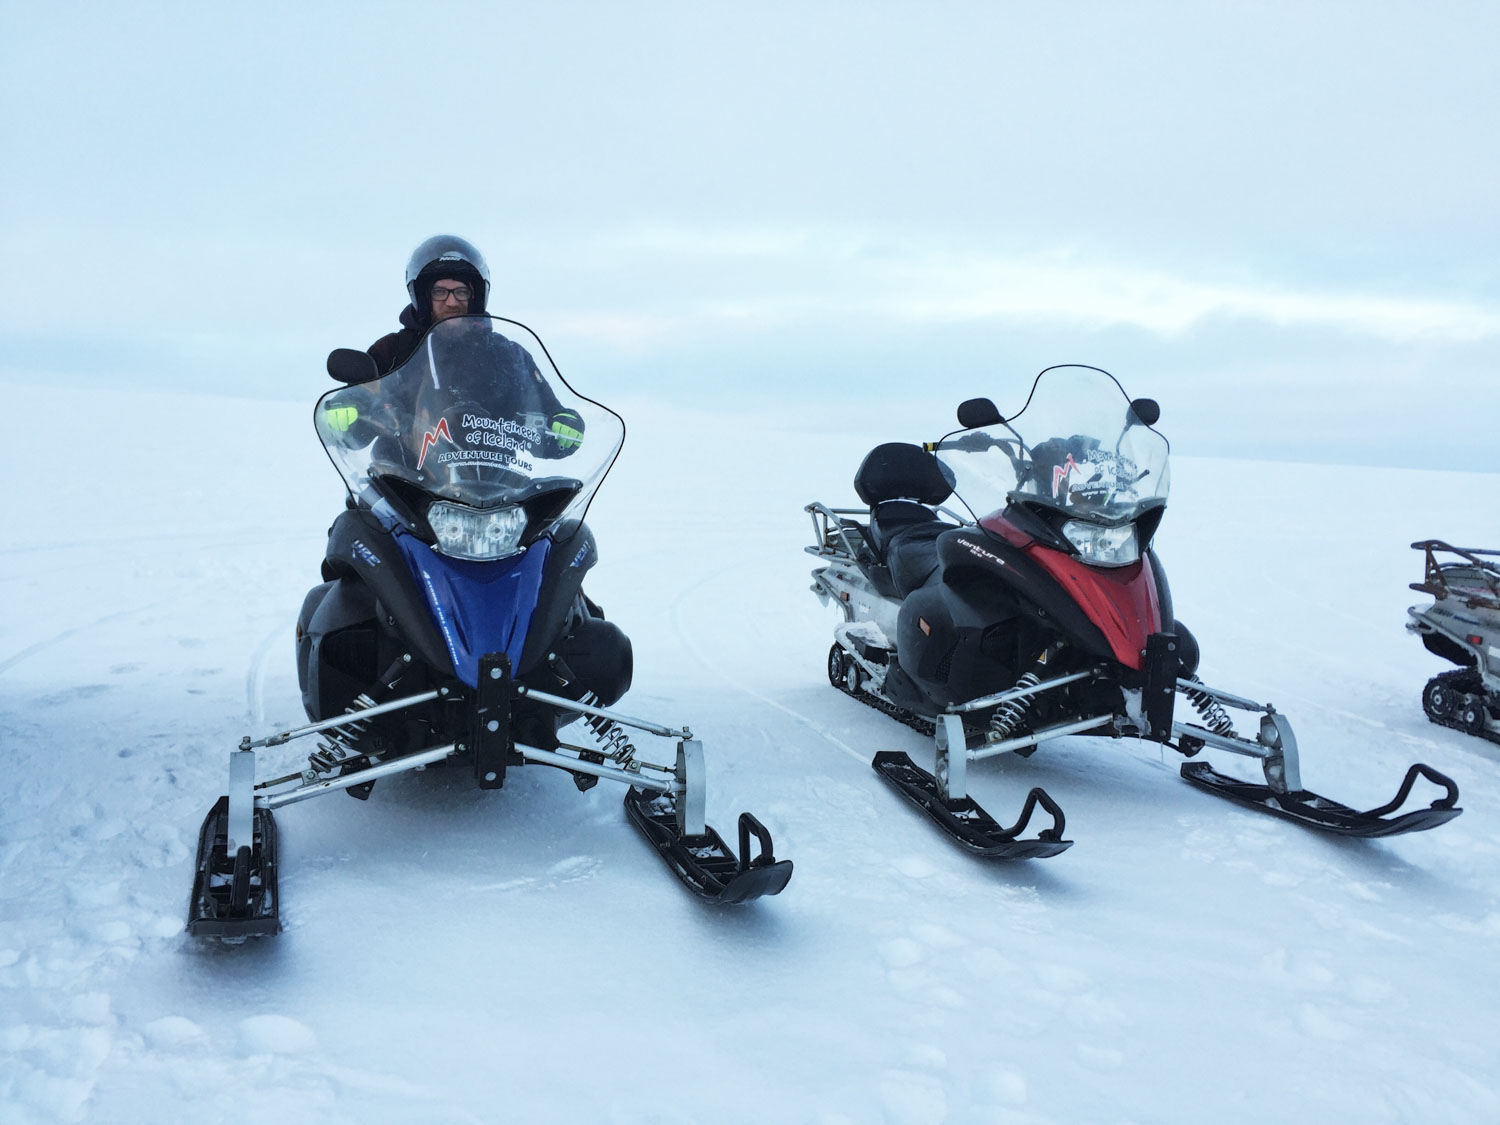 Iceland 5-day itinerary - Snowmobiling